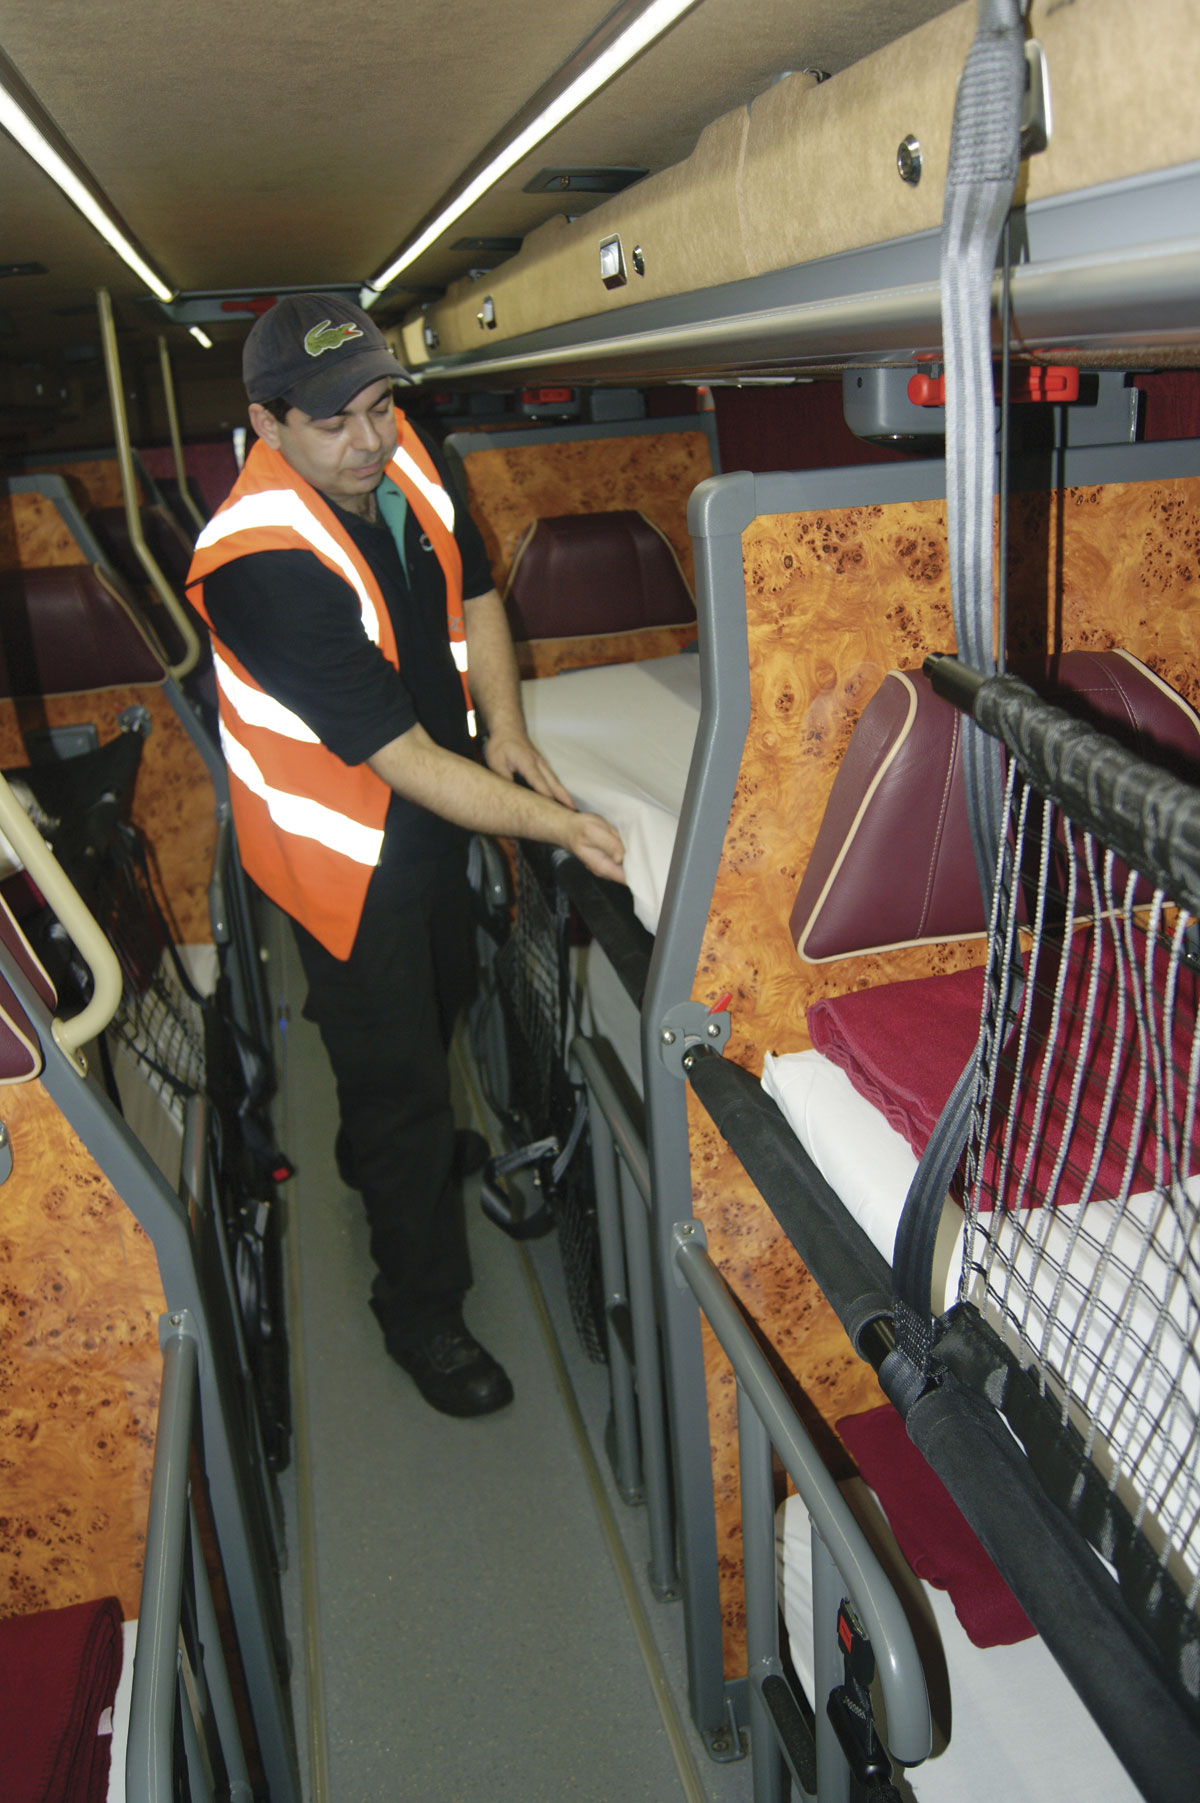 Inside Megabus Sleeper Pictures to Pin on Pinterest ...